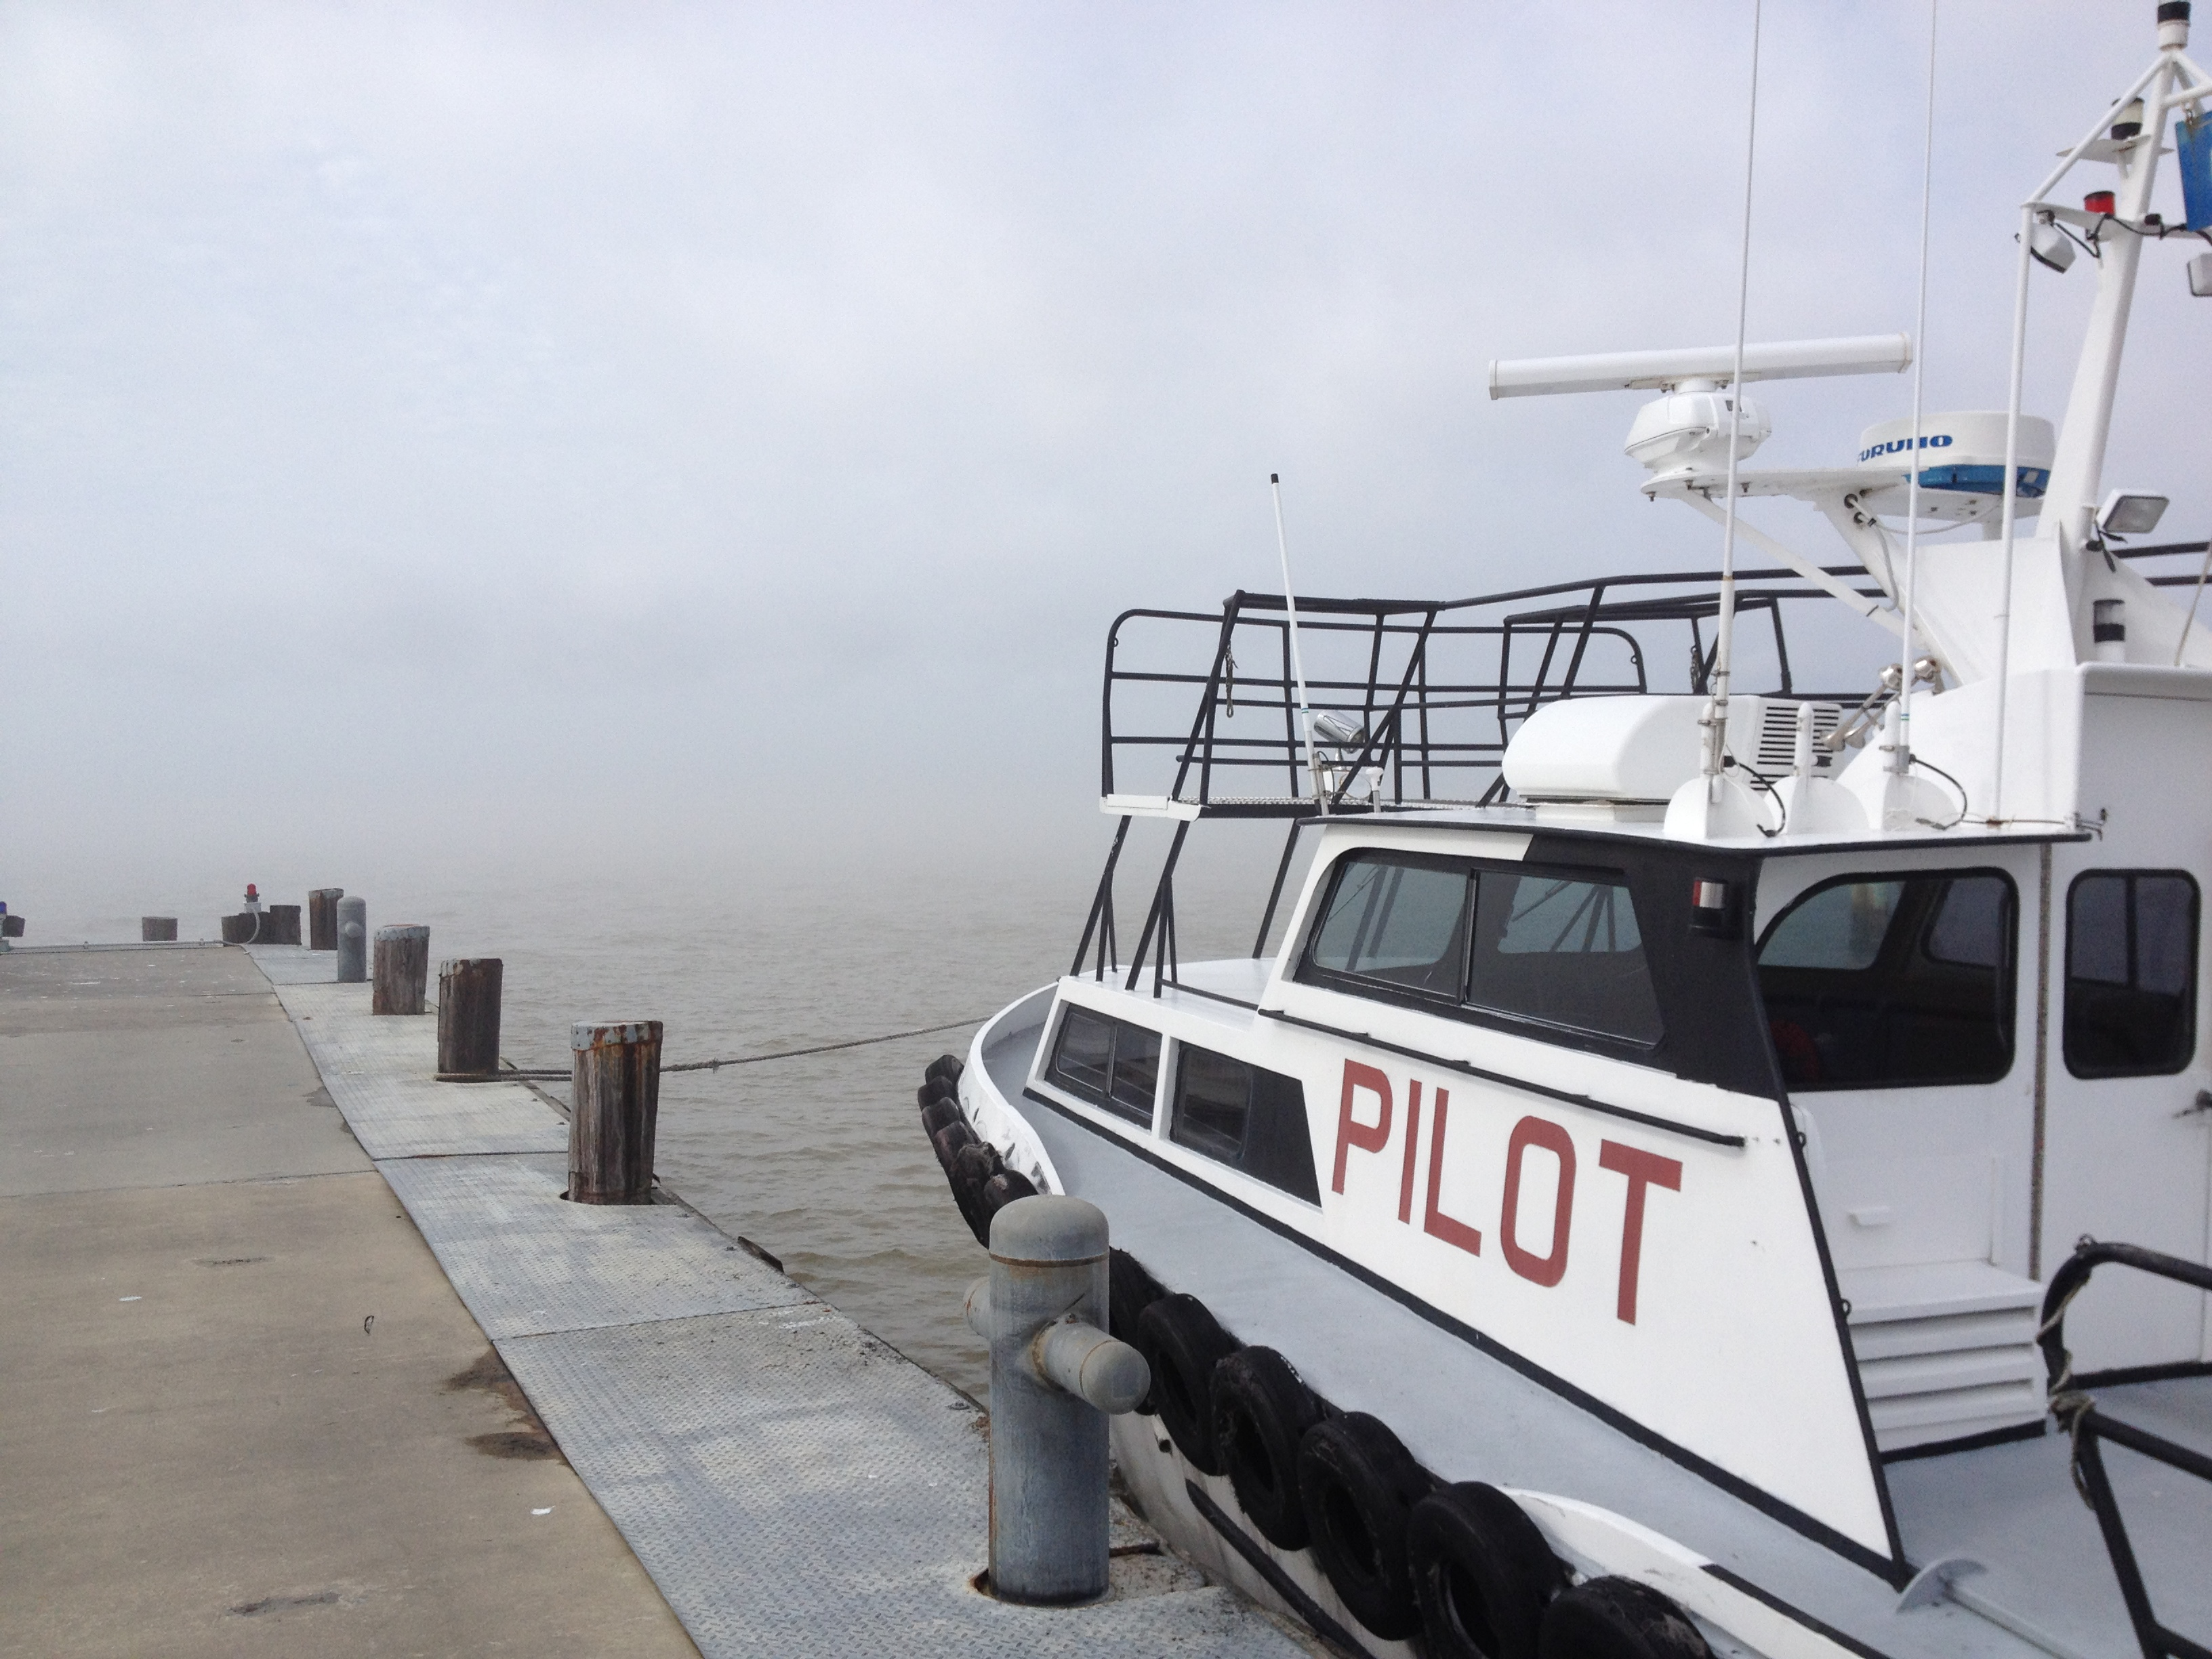 The fog was thick the 10 miles from Venice to Pilottown, which is located one mile above Mile Zero. The Gulf of Mexico is 12 miles from Mile Zero down South Pass.